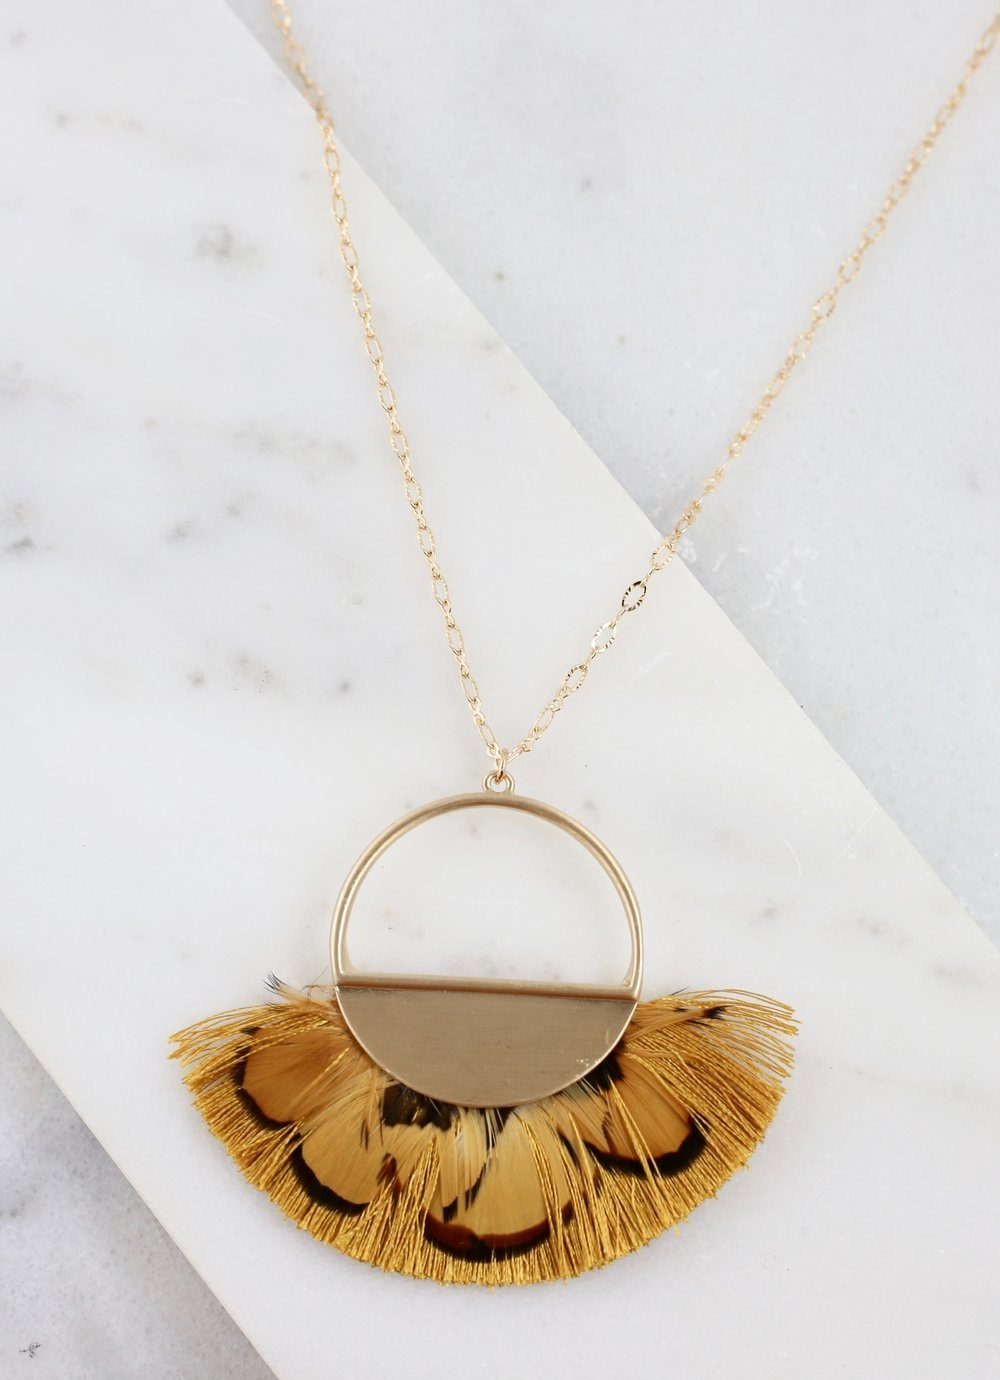 Owens Long Mustard Feather Necklace - Caroline Hill